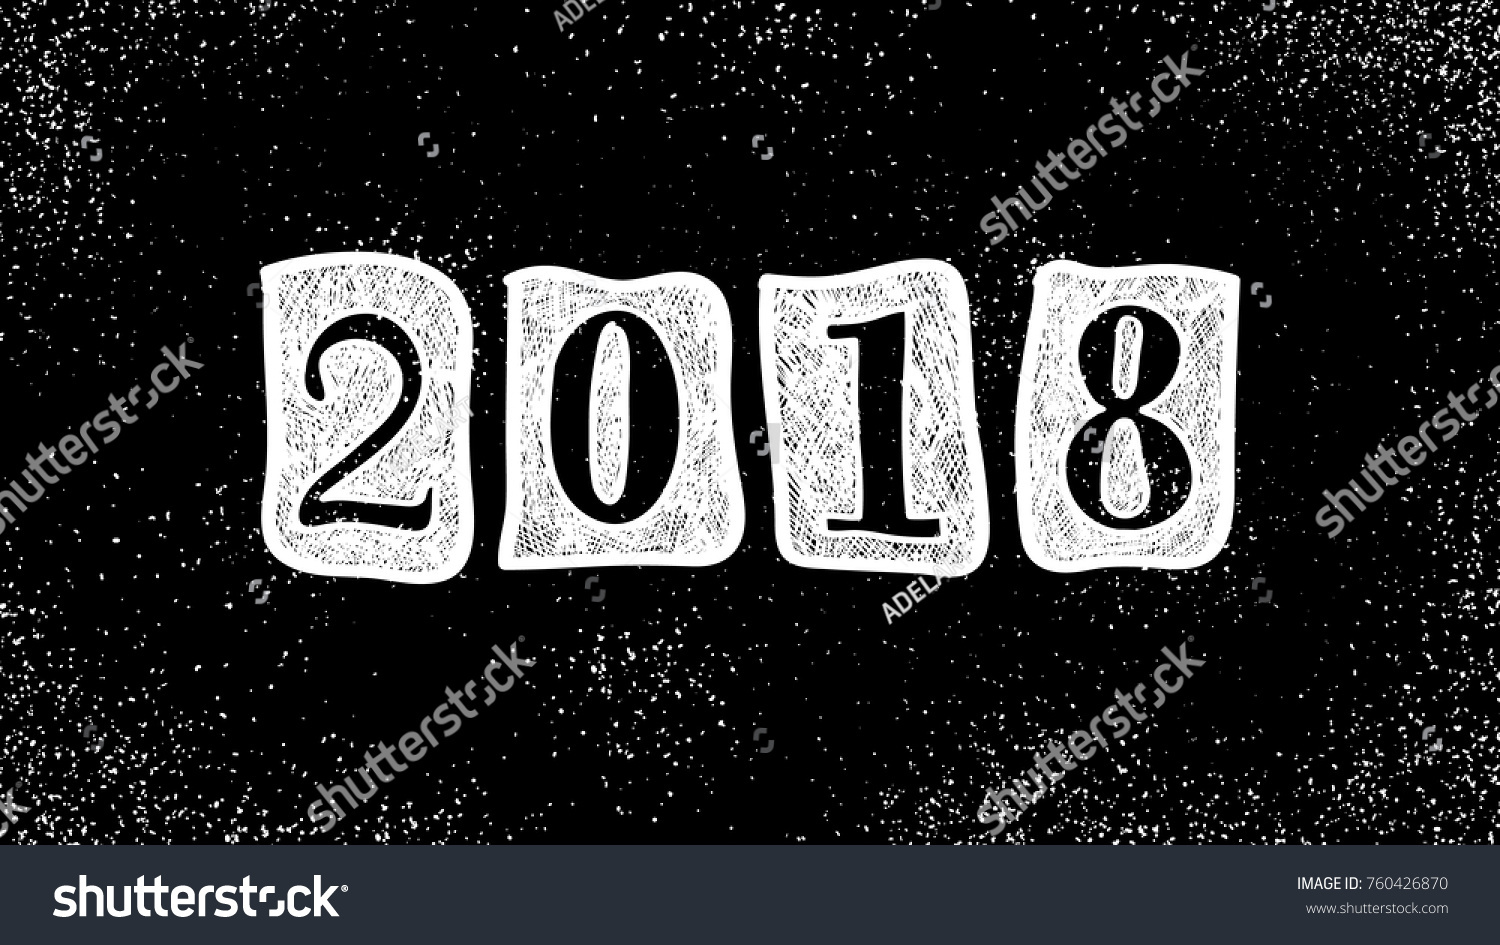 new year 2018 doodle sign winter holiday abstract background christmas wallpaper celebration banner